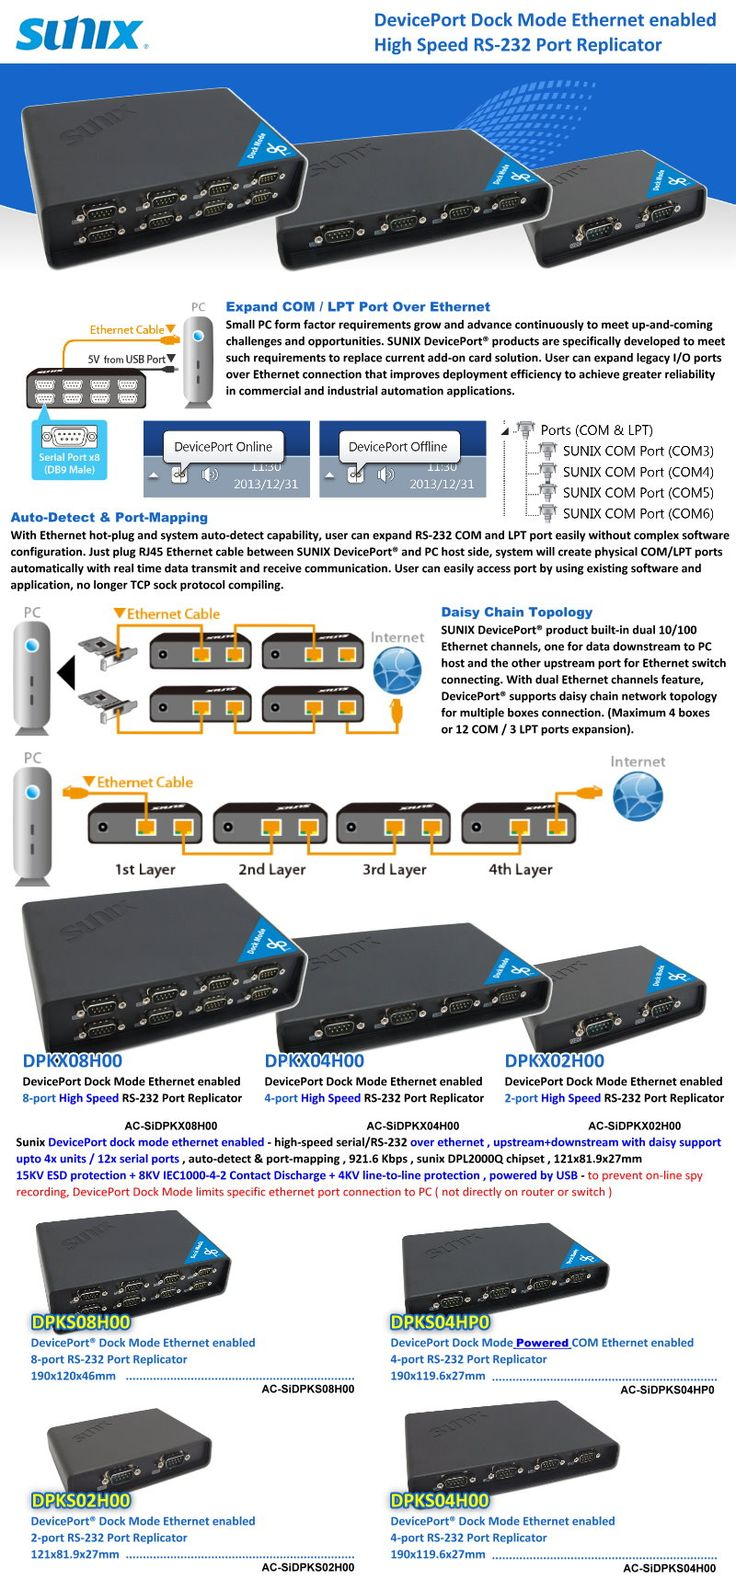 DevicePort Dock Mode Ethernet enabled High Speed RS-232 Port Replicator